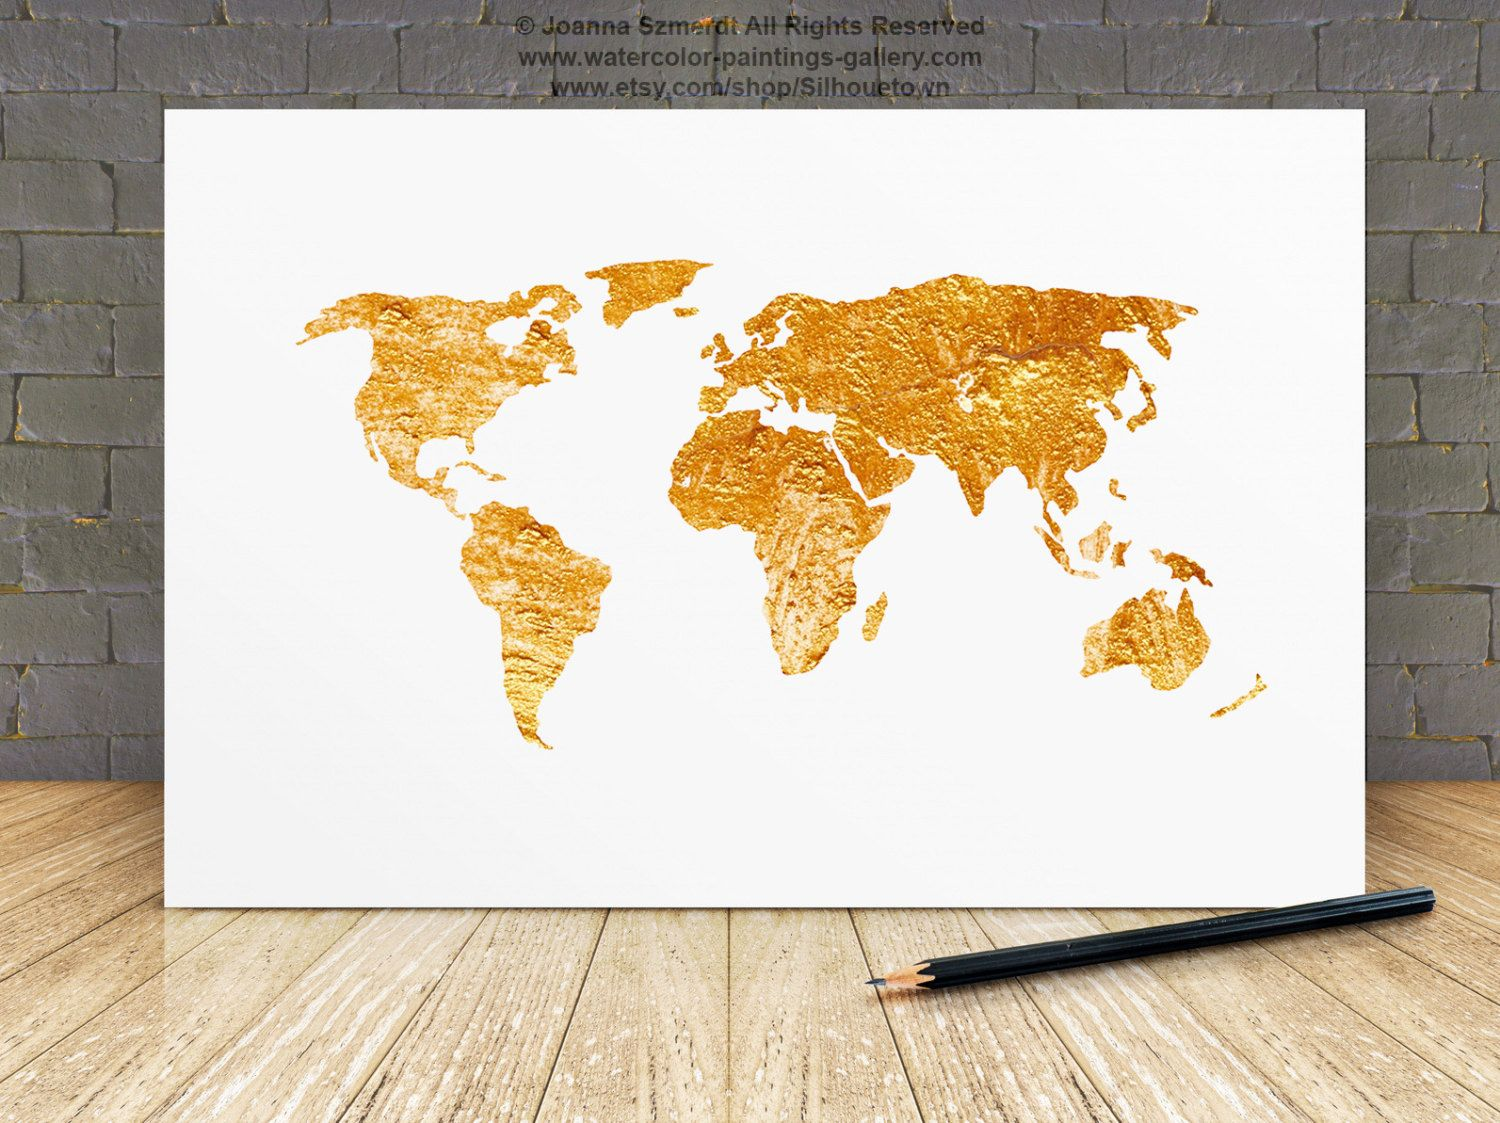 World map gold painting map silhouette large poster room decor world map gold painting map silhouette large poster room decor silhouette gumiabroncs